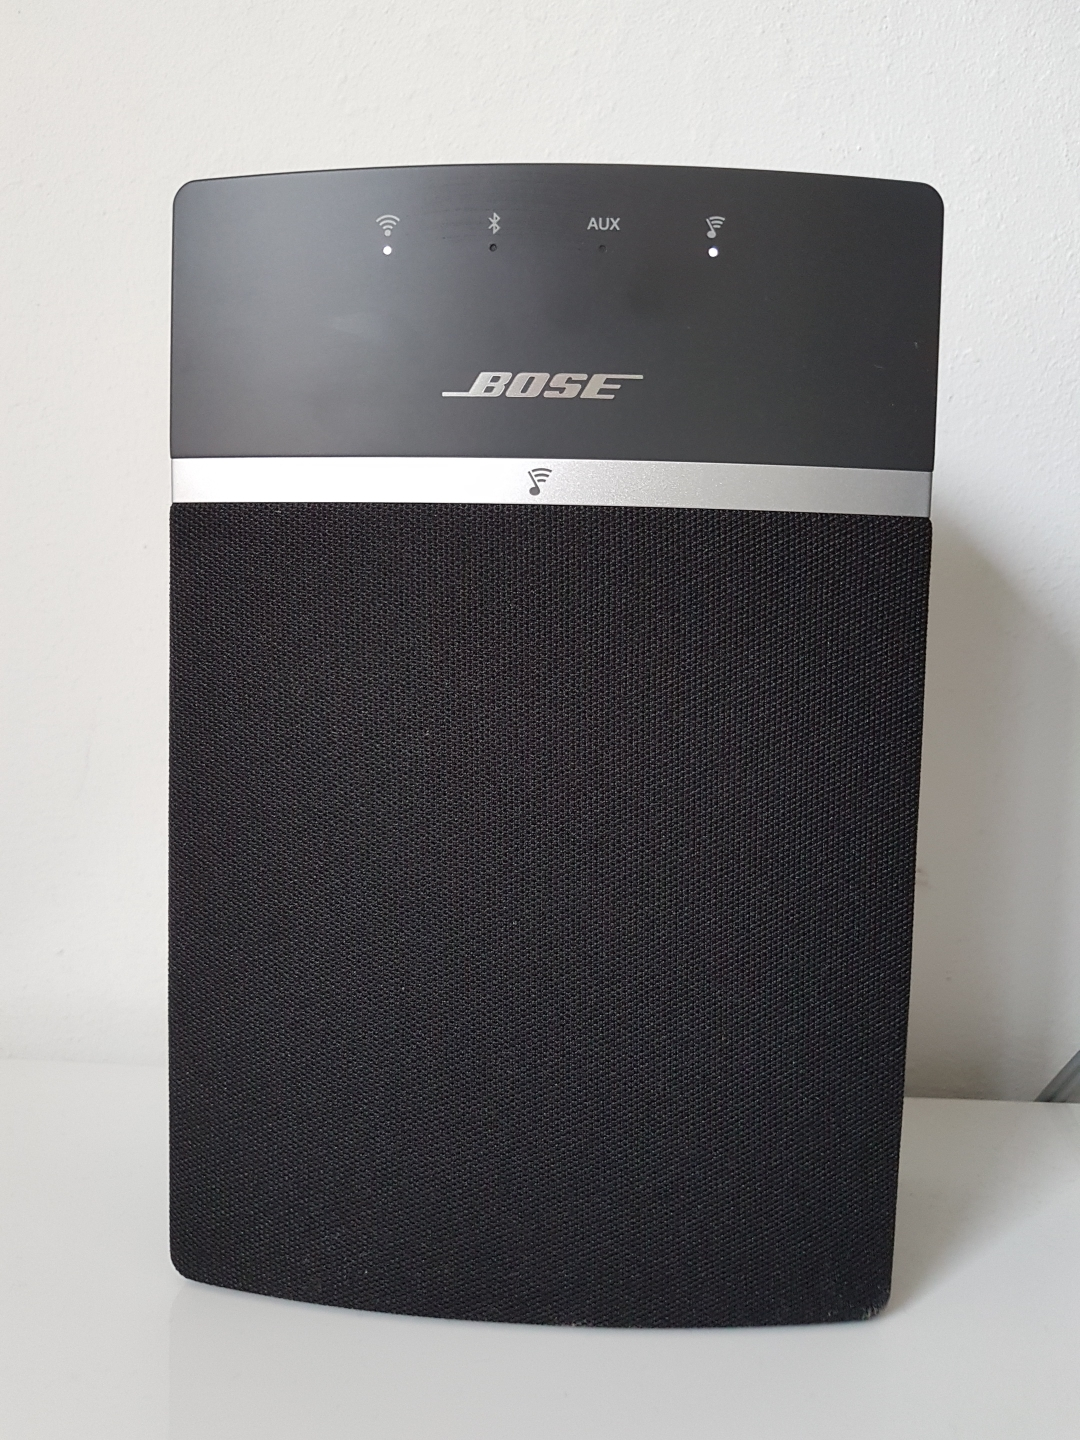 bose soundtouch 10 lautsprecher rabaukenfamilie pepatestet. Black Bedroom Furniture Sets. Home Design Ideas